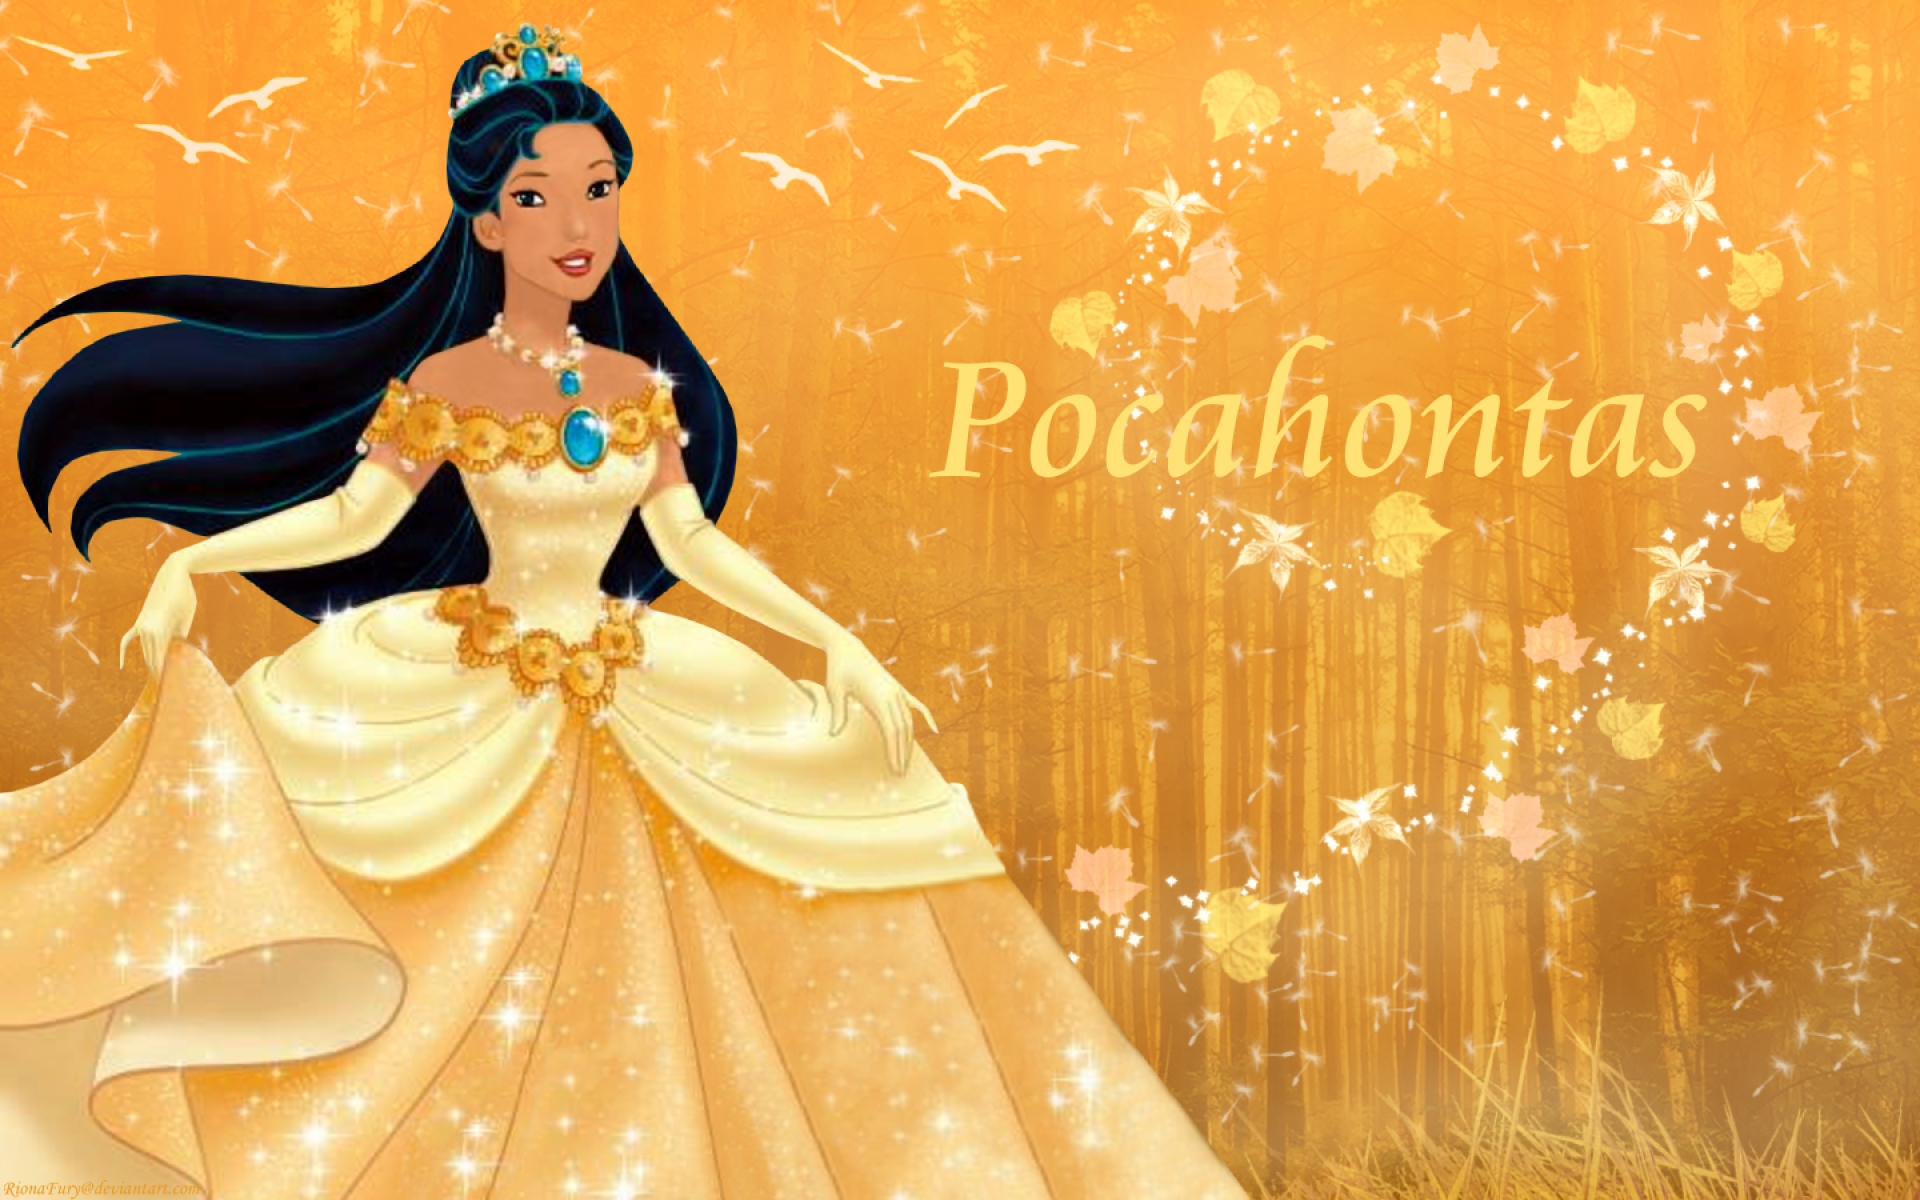 Pocahontas Wallpapers | Best Wallpapers